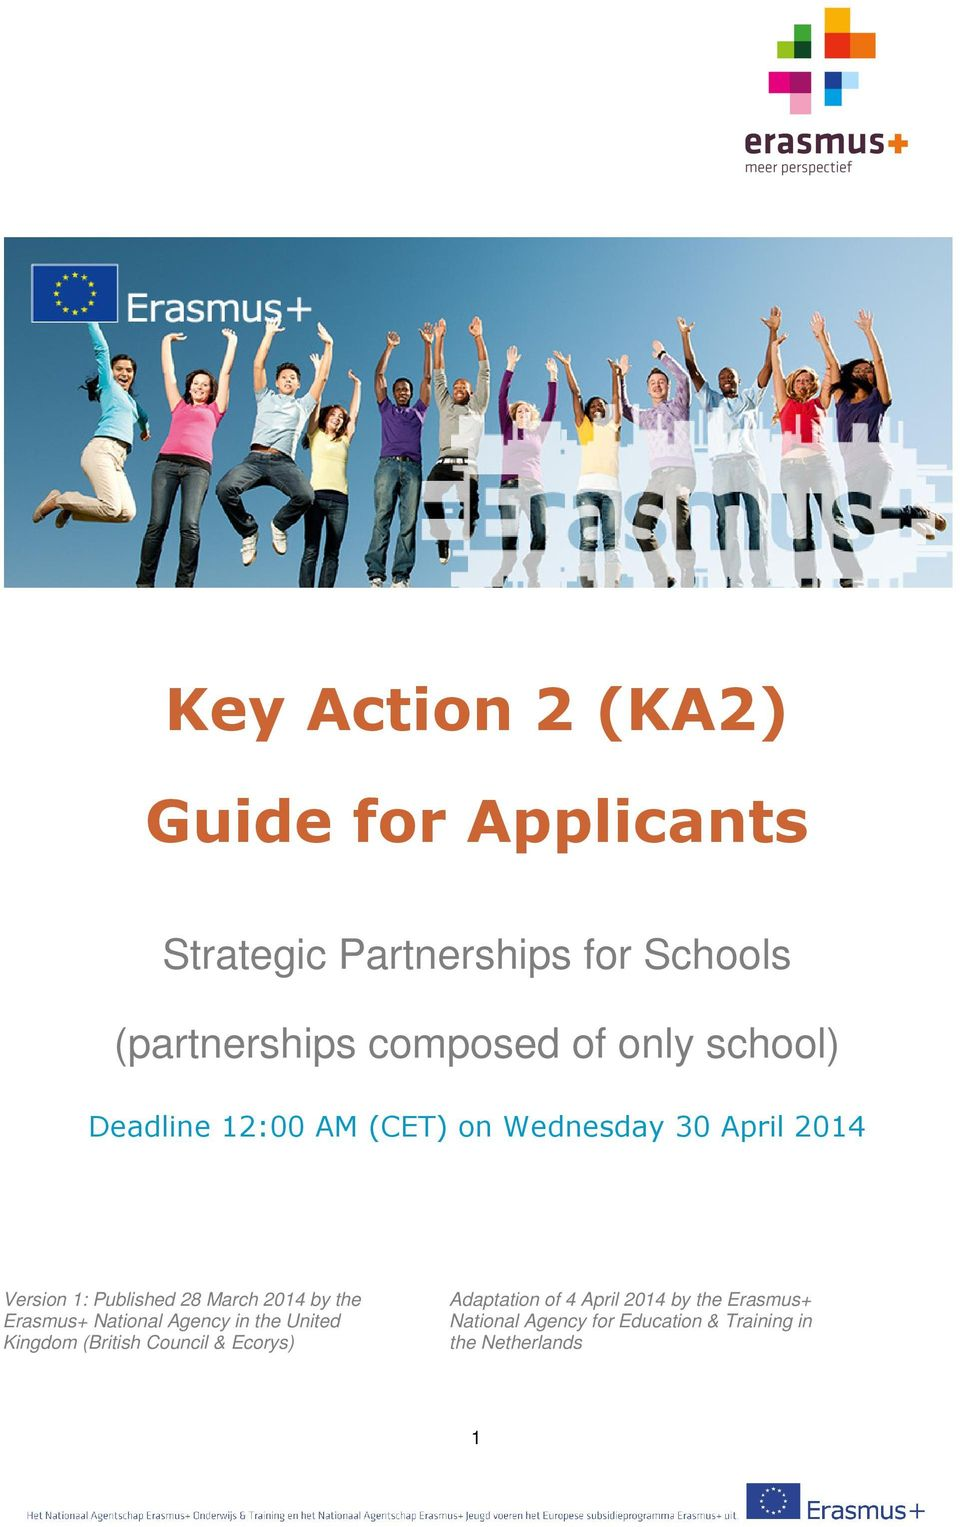 28 March 2014 by the Erasmus+ National Agency in the United Kingdom (British Council & Ecorys)